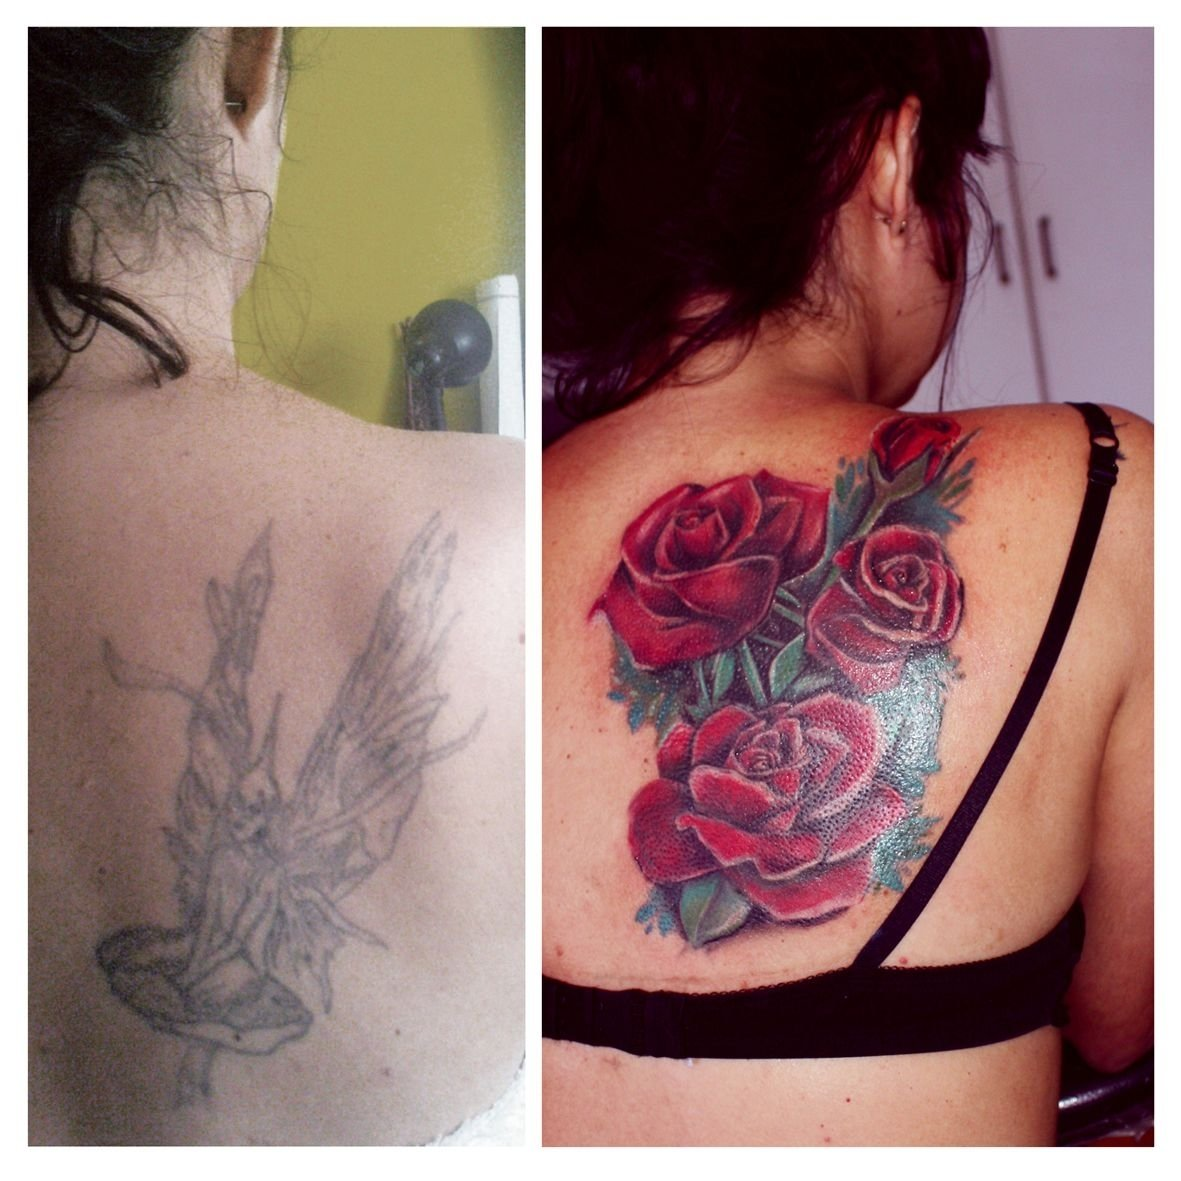 10 Awesome Tattoo Cover Up Ideas For Women tattoo cover up red roses tattoo ideas pinterest tattoo 2021